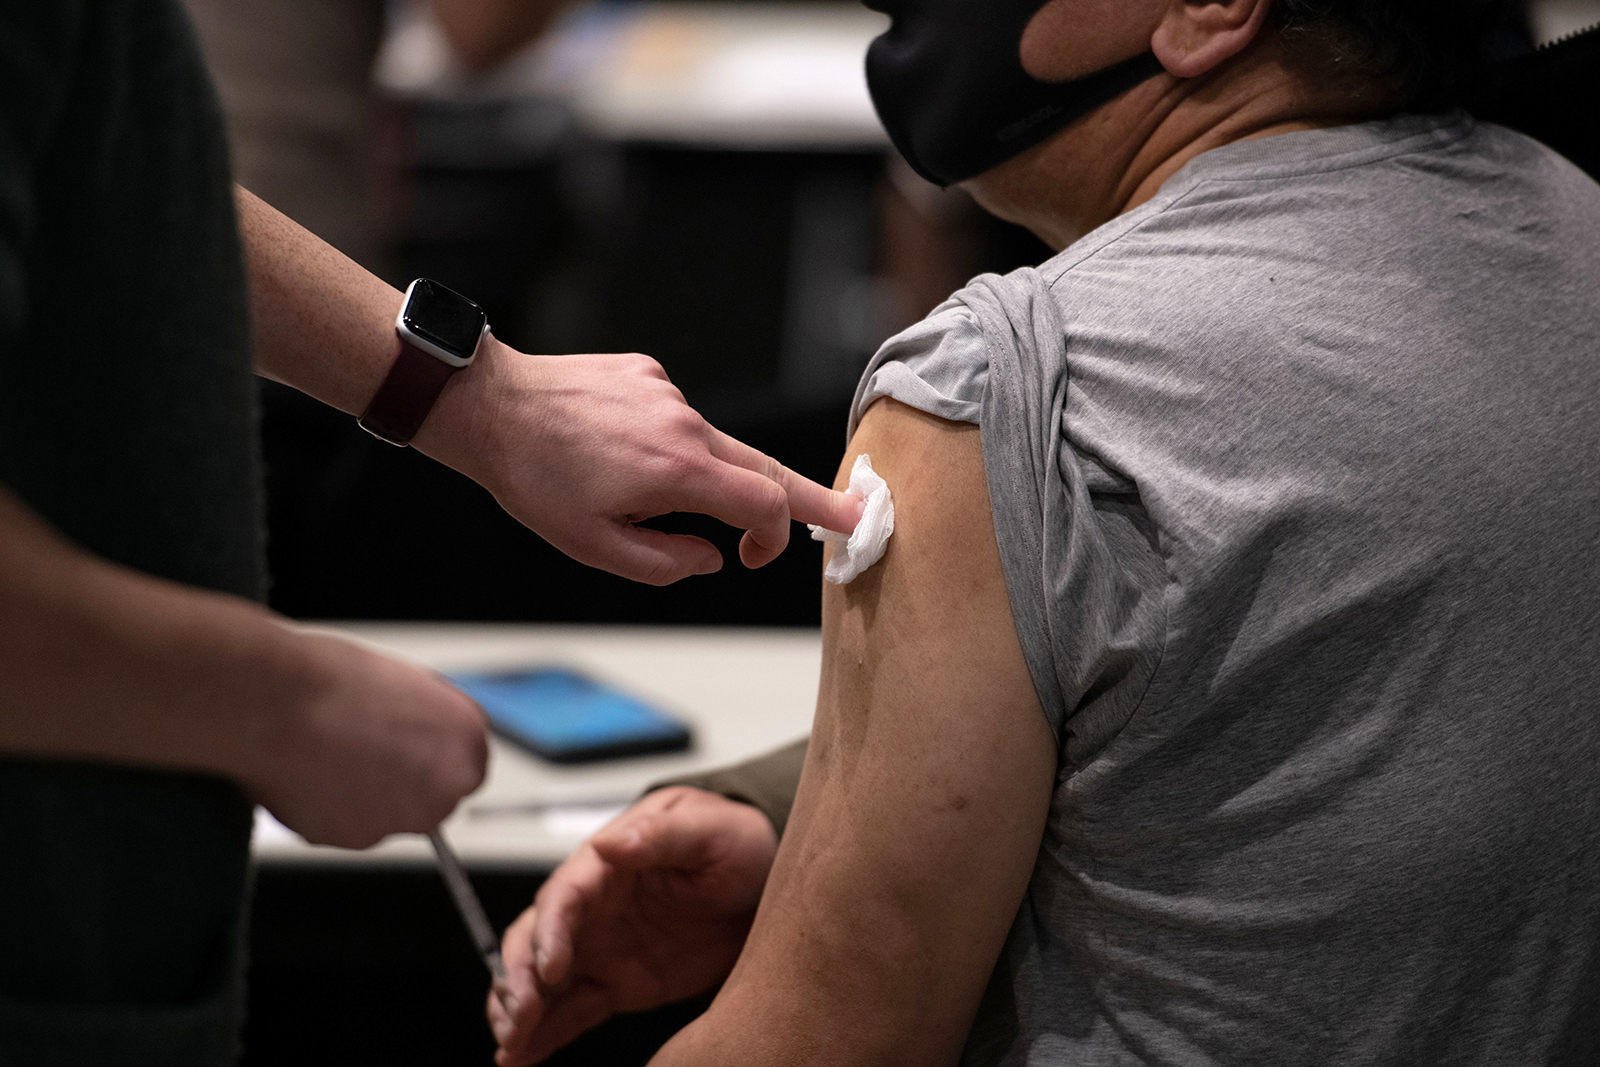 A patient's blood is blotted after receiving a dose of the Pfizer Covid-19 vaccine at Virginia Mason's vaccine clinic in Seattle, Washington on January 24.